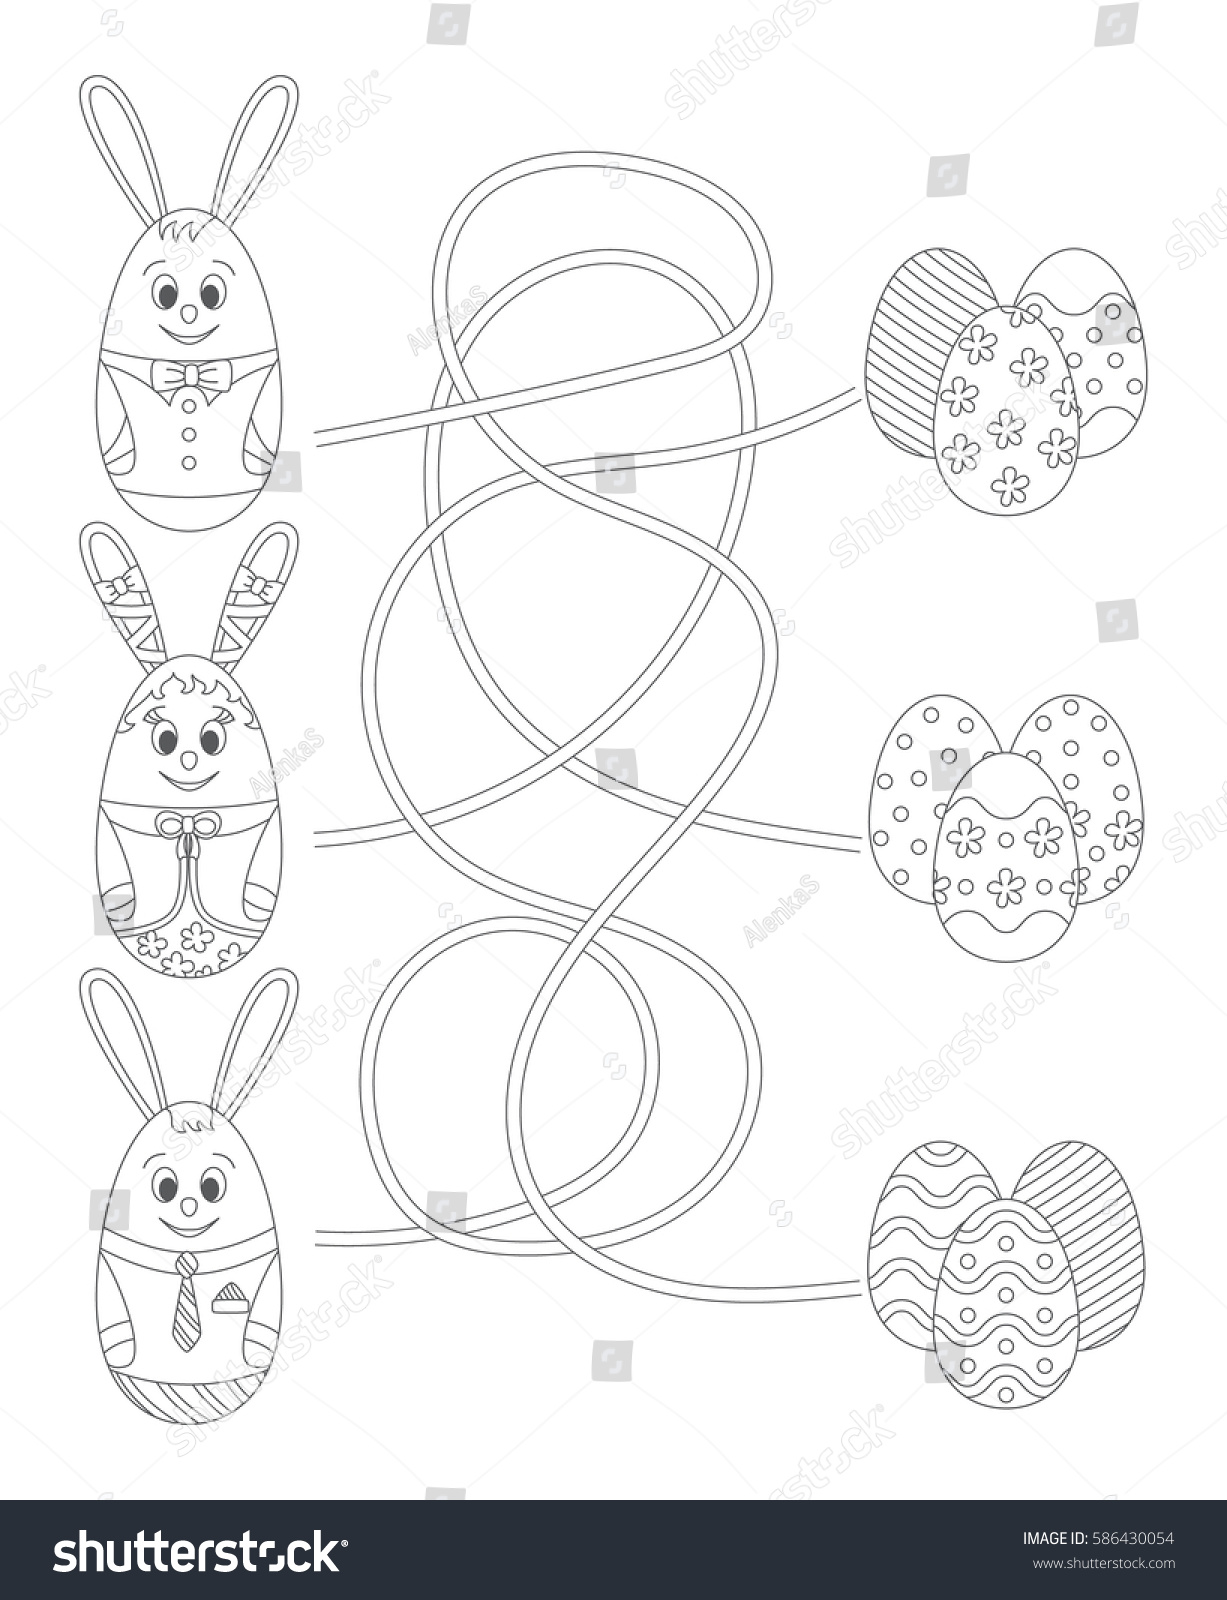 Coloring Page Easter Maze Game Kids Stock Vector 586430054